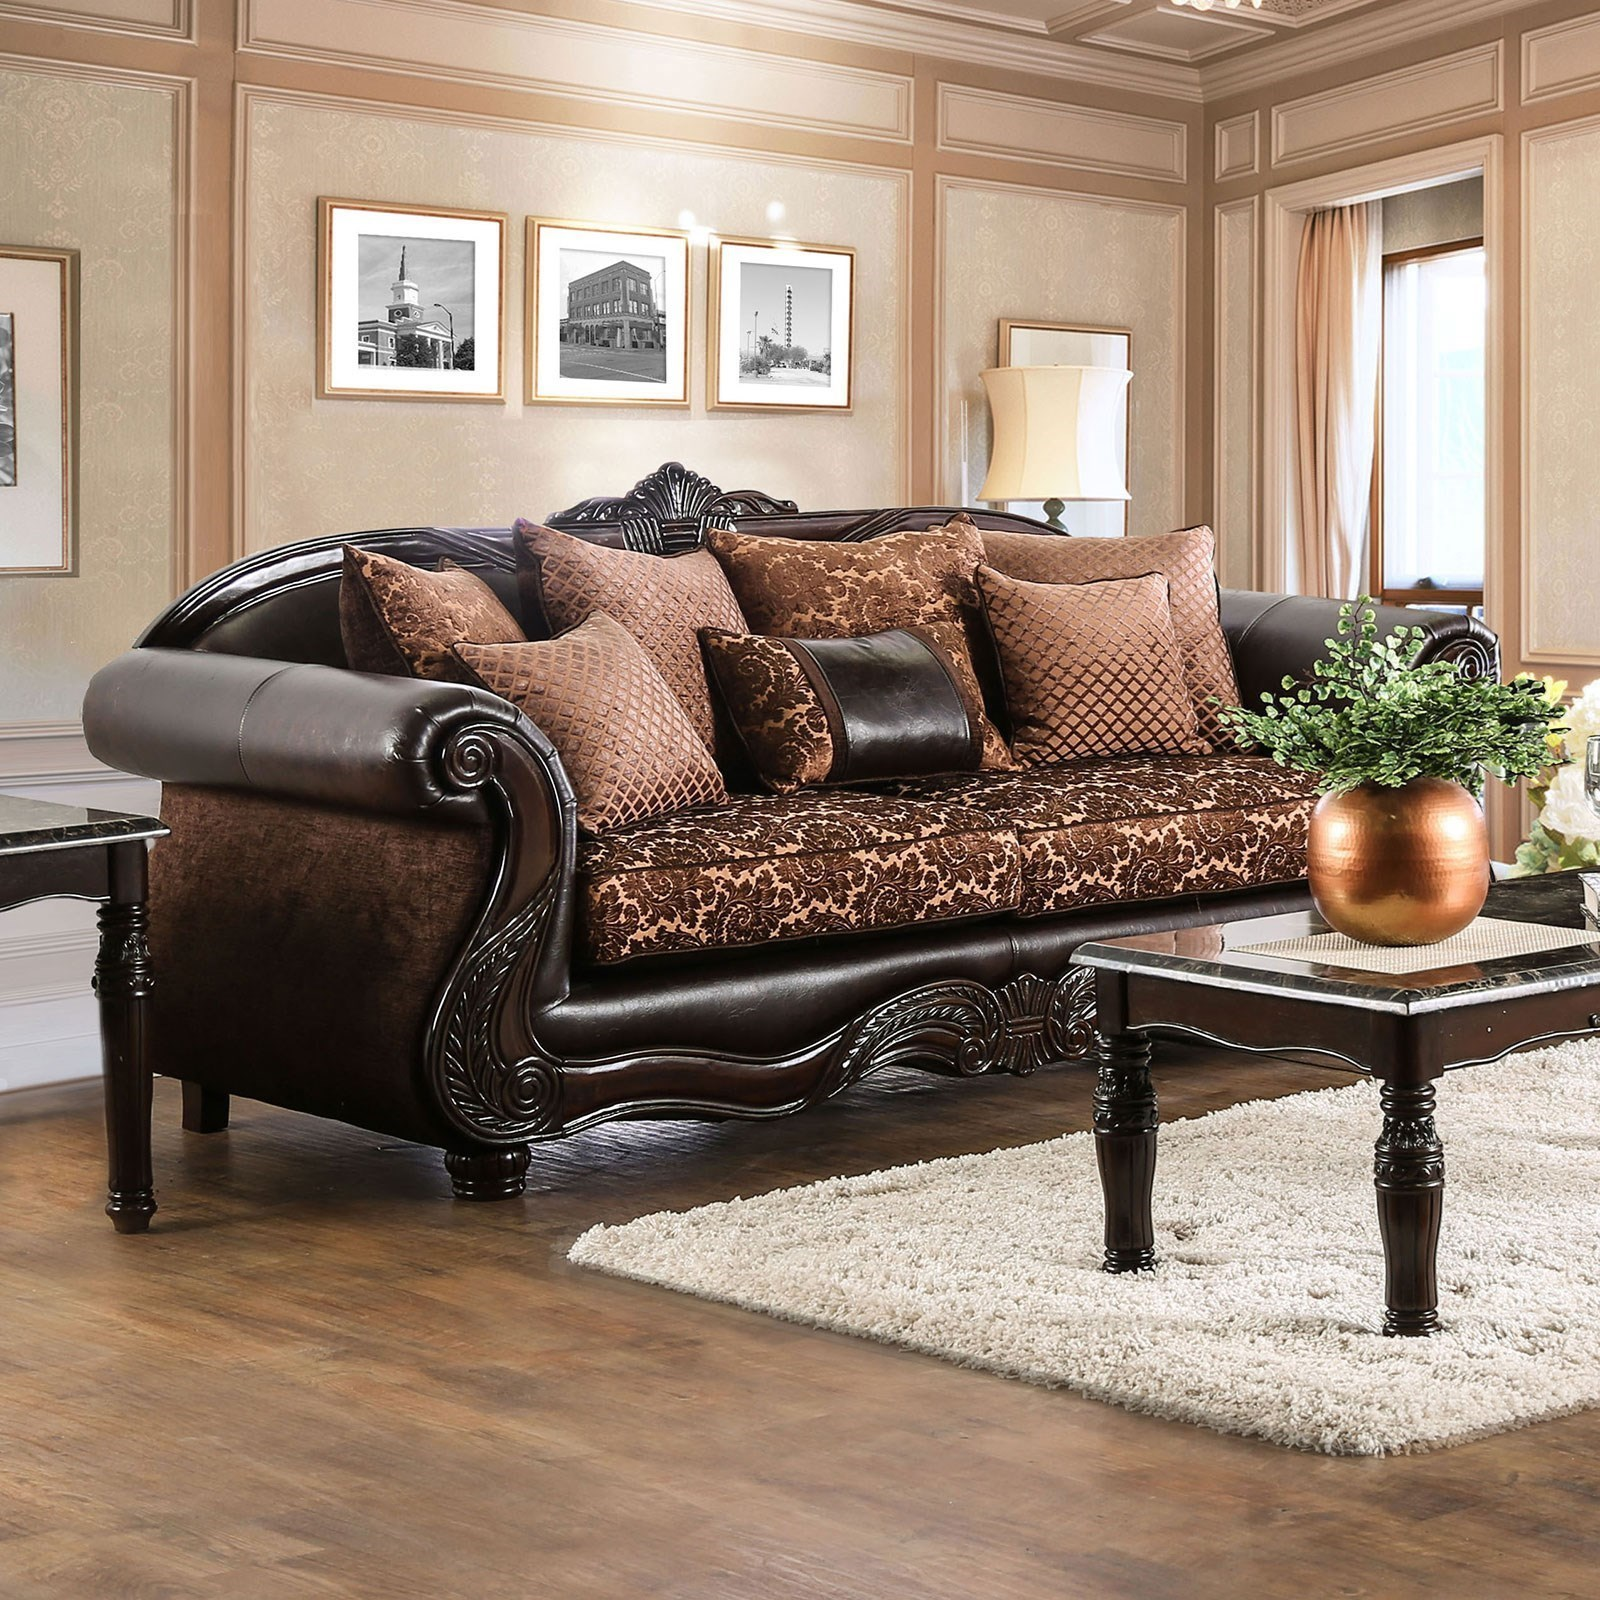 Elpis Traditional Fabric And Faux Leather Sofa With Ornate Carved Wood By  Furniture Of America